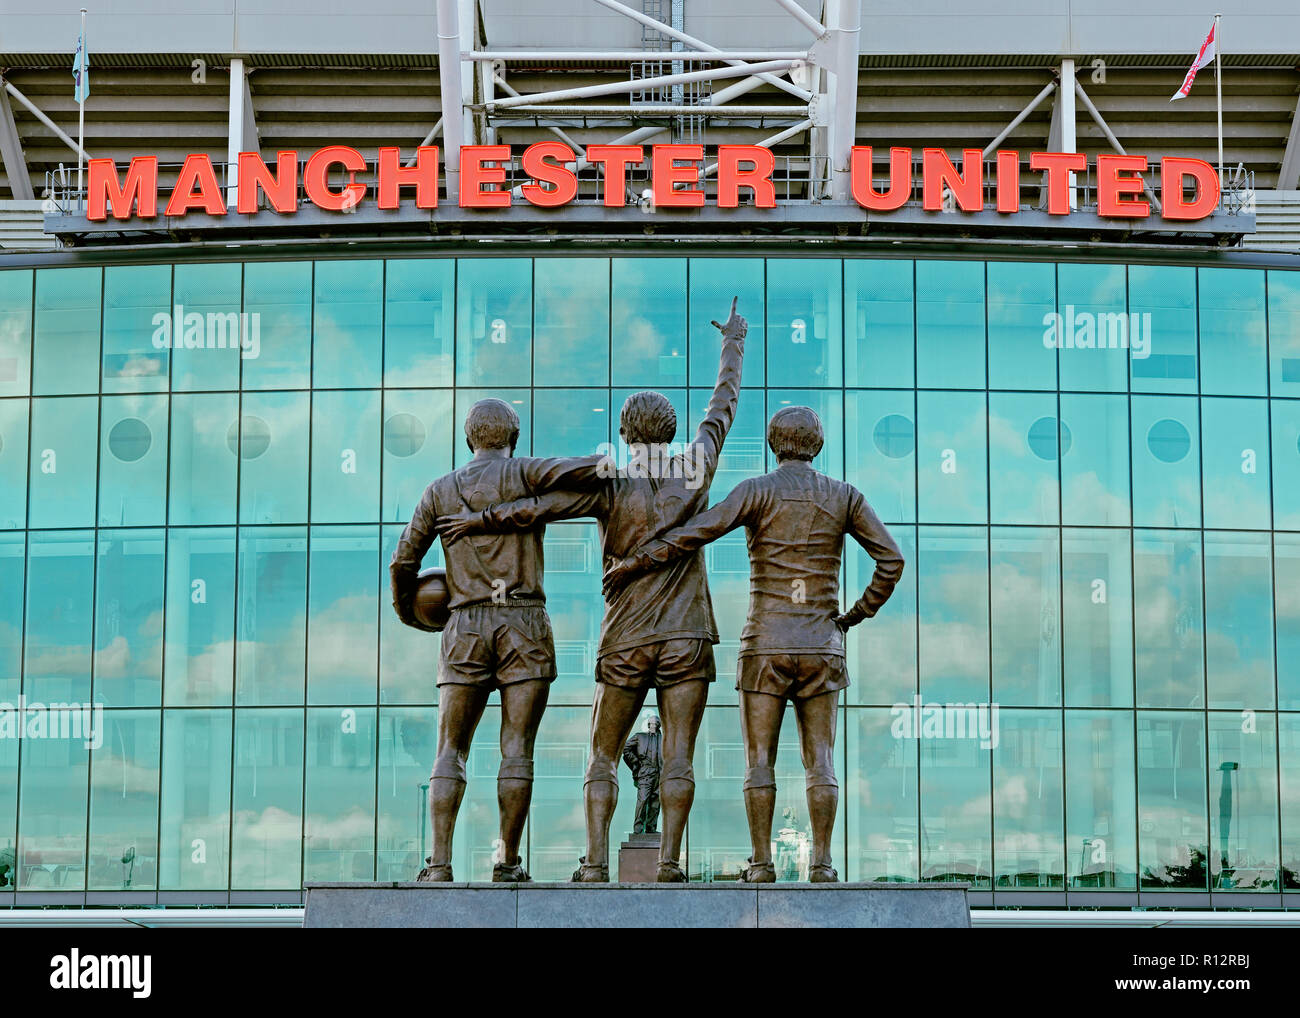 Old Trafford Stadium, Home to Manchester United Football Club, England, United Kingdom - Stock Image